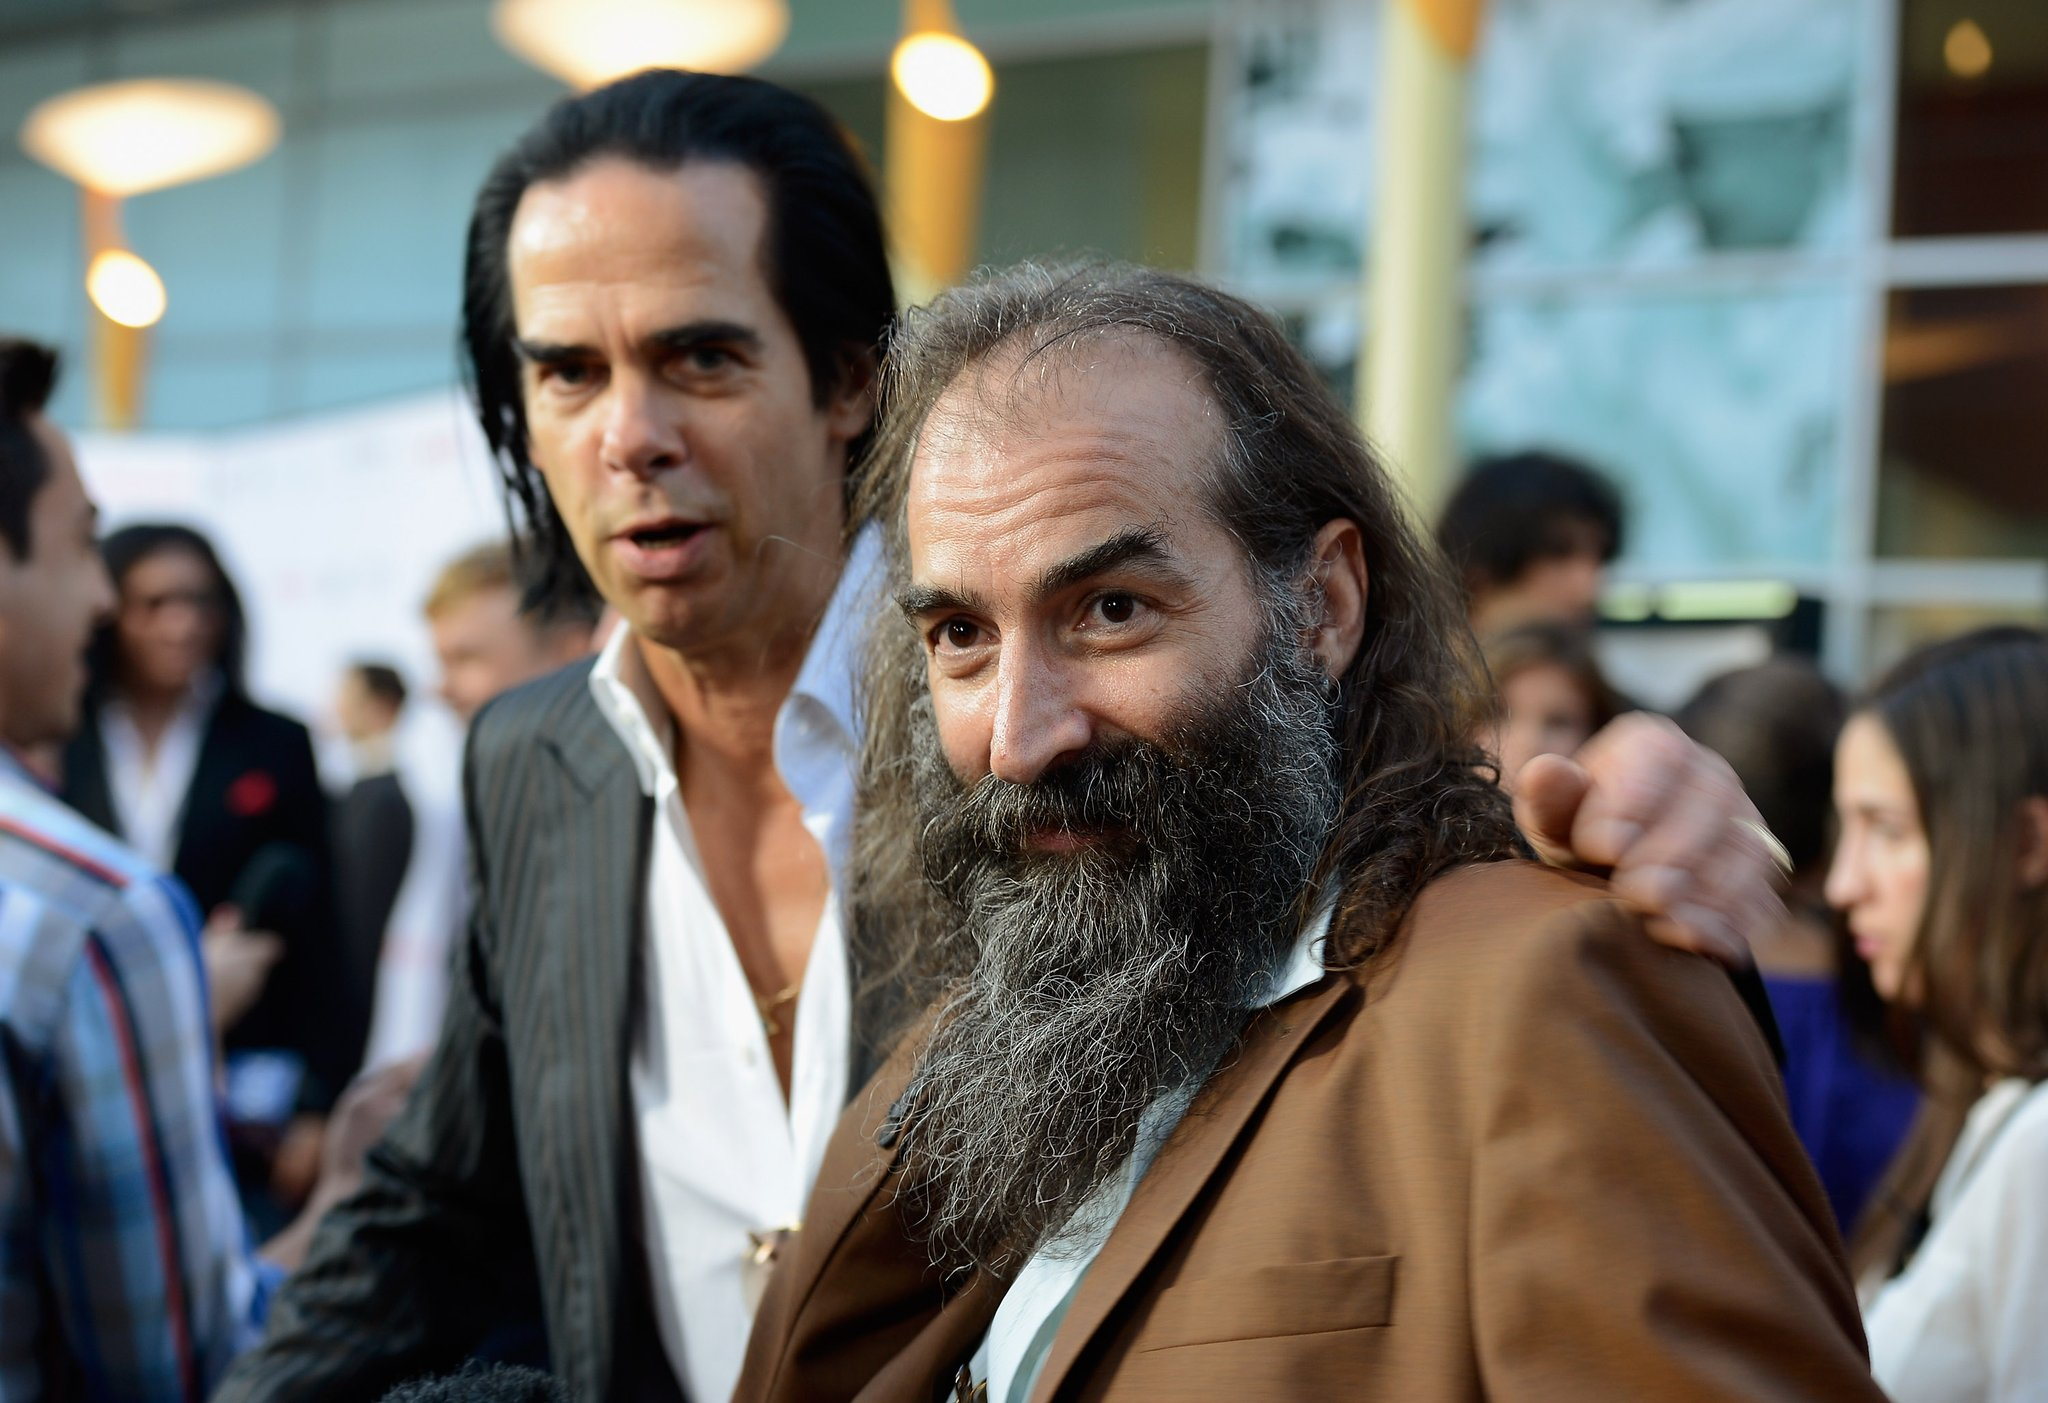 .@nickcave and @warrenellis13 scoring @HBO's The Case Against Adnan Syed https://t.co/FxQSCZy7V1 https://t.co/tudQcWUrRm